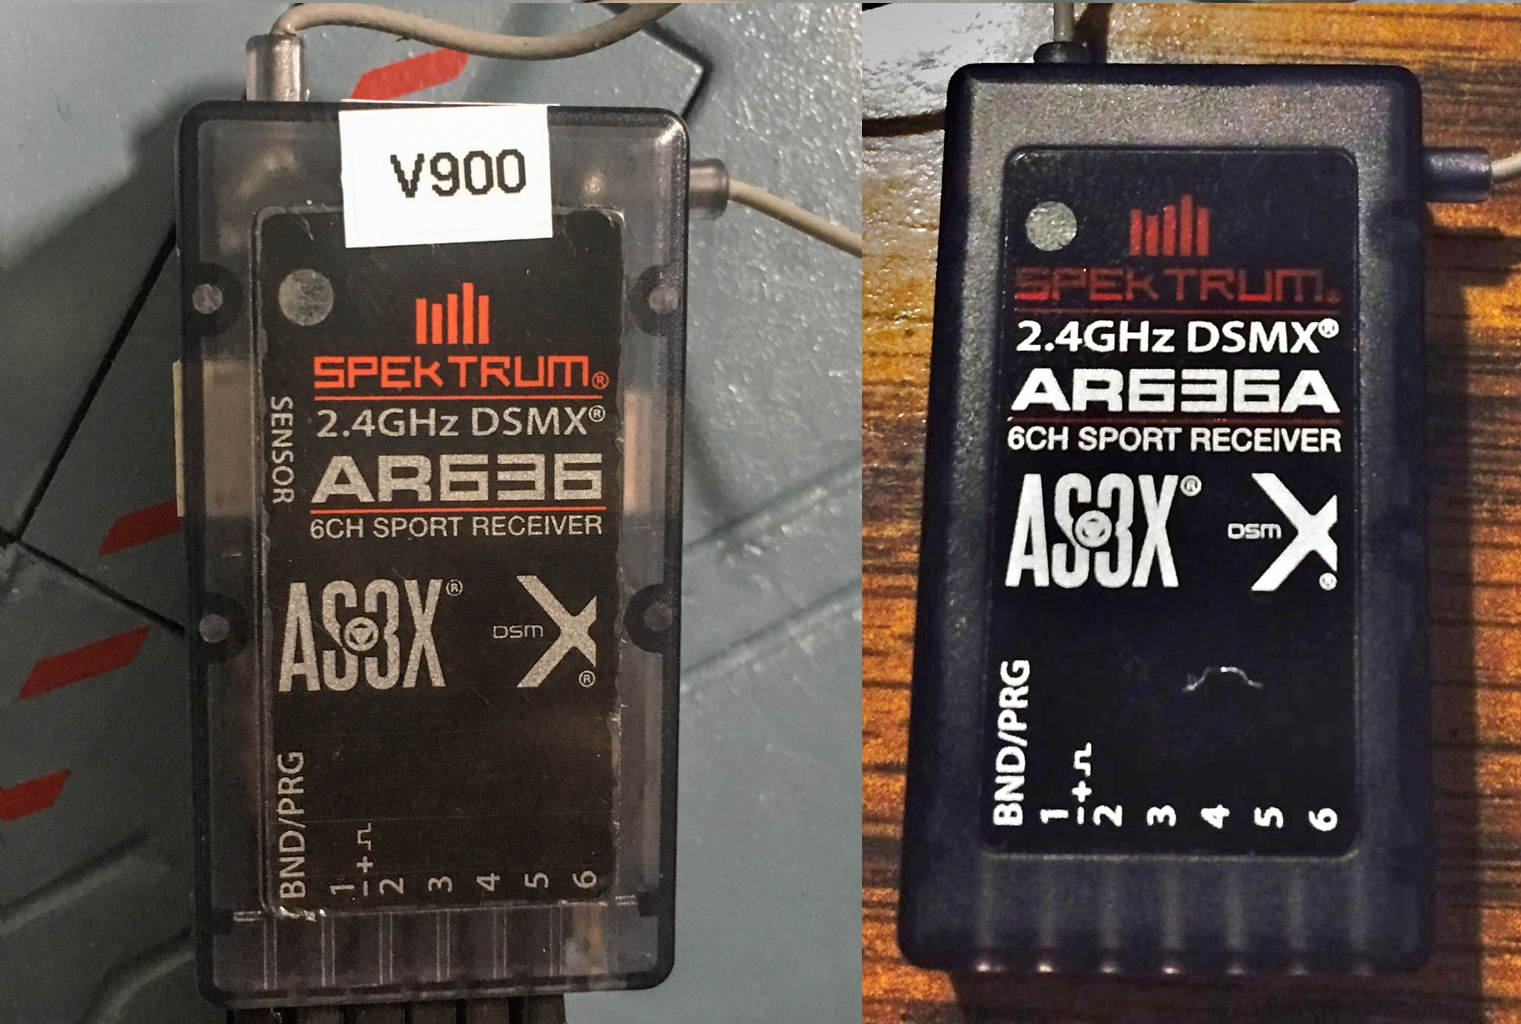 What on earth is SAFE® or: How I hacked AR636 from V900 to fly the